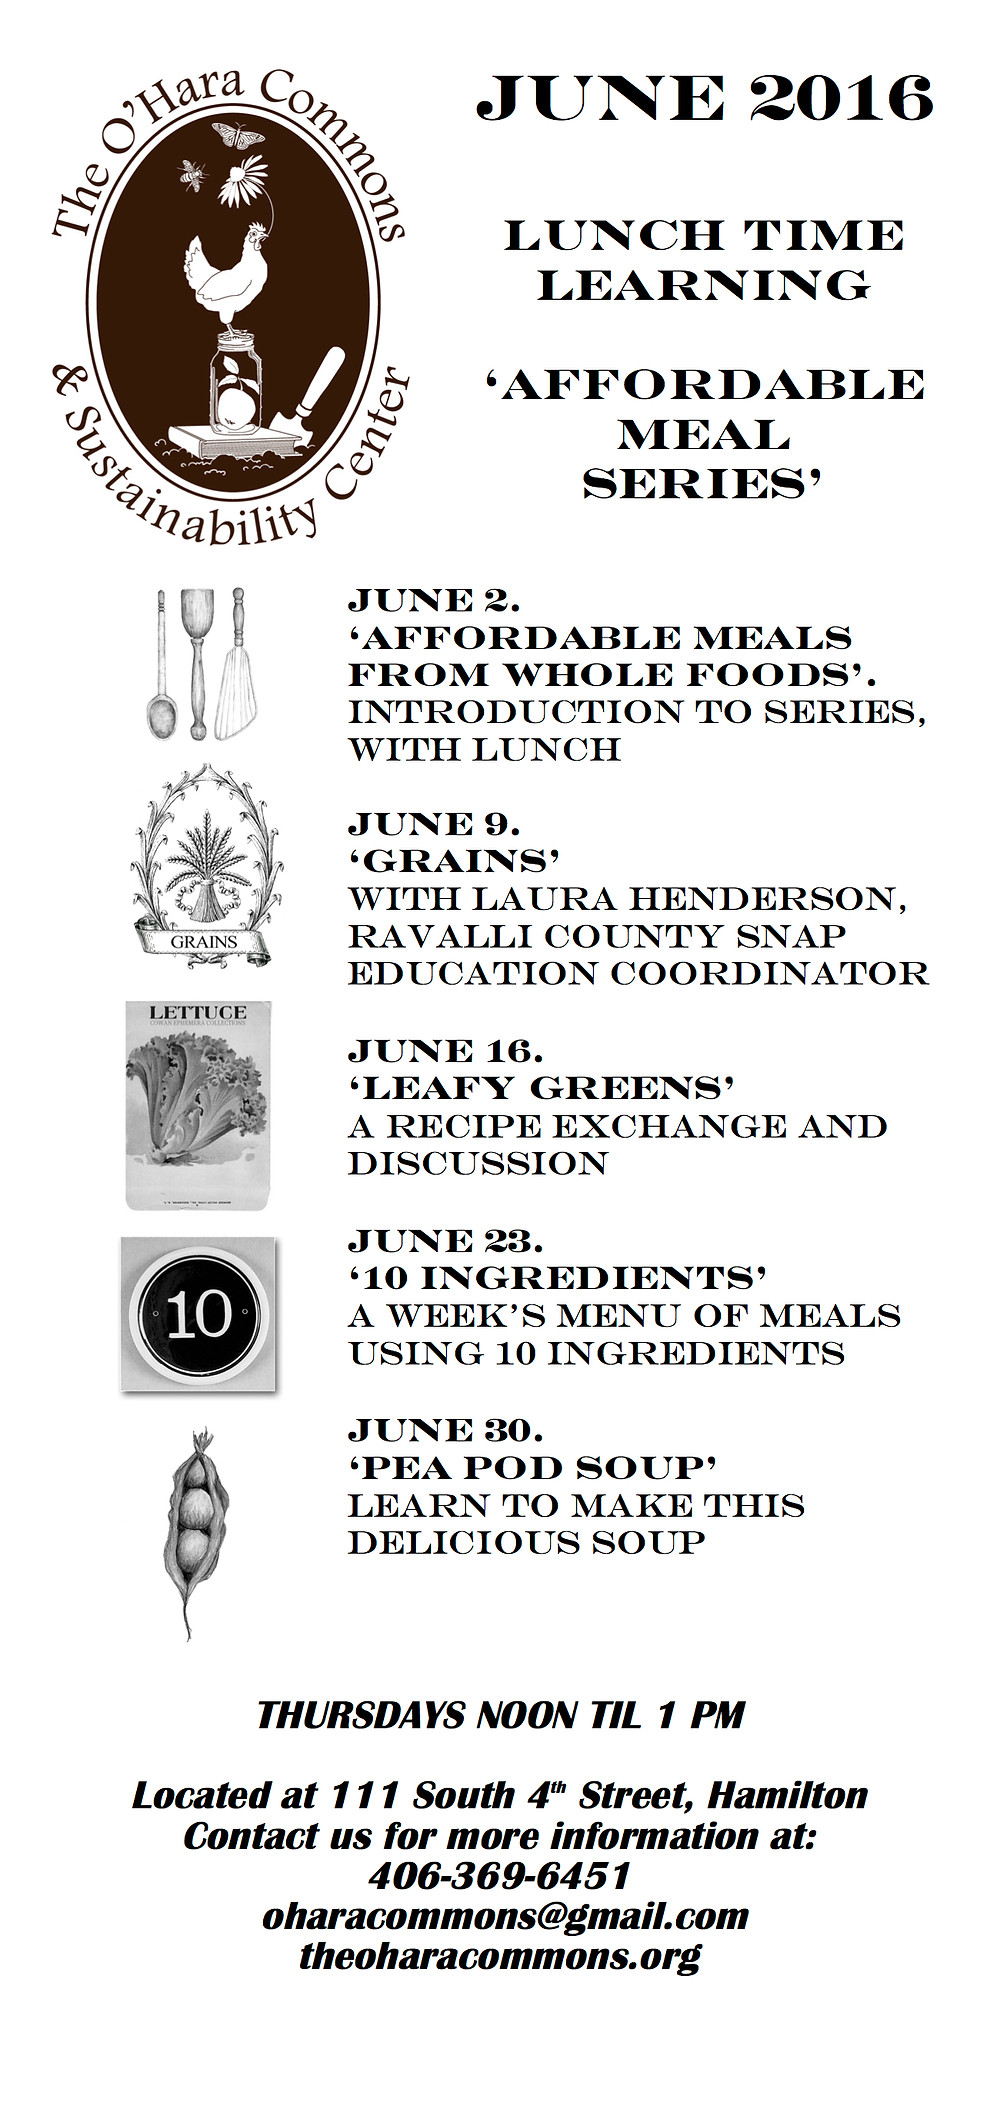 June Schedule 'Affordable Meal Series'